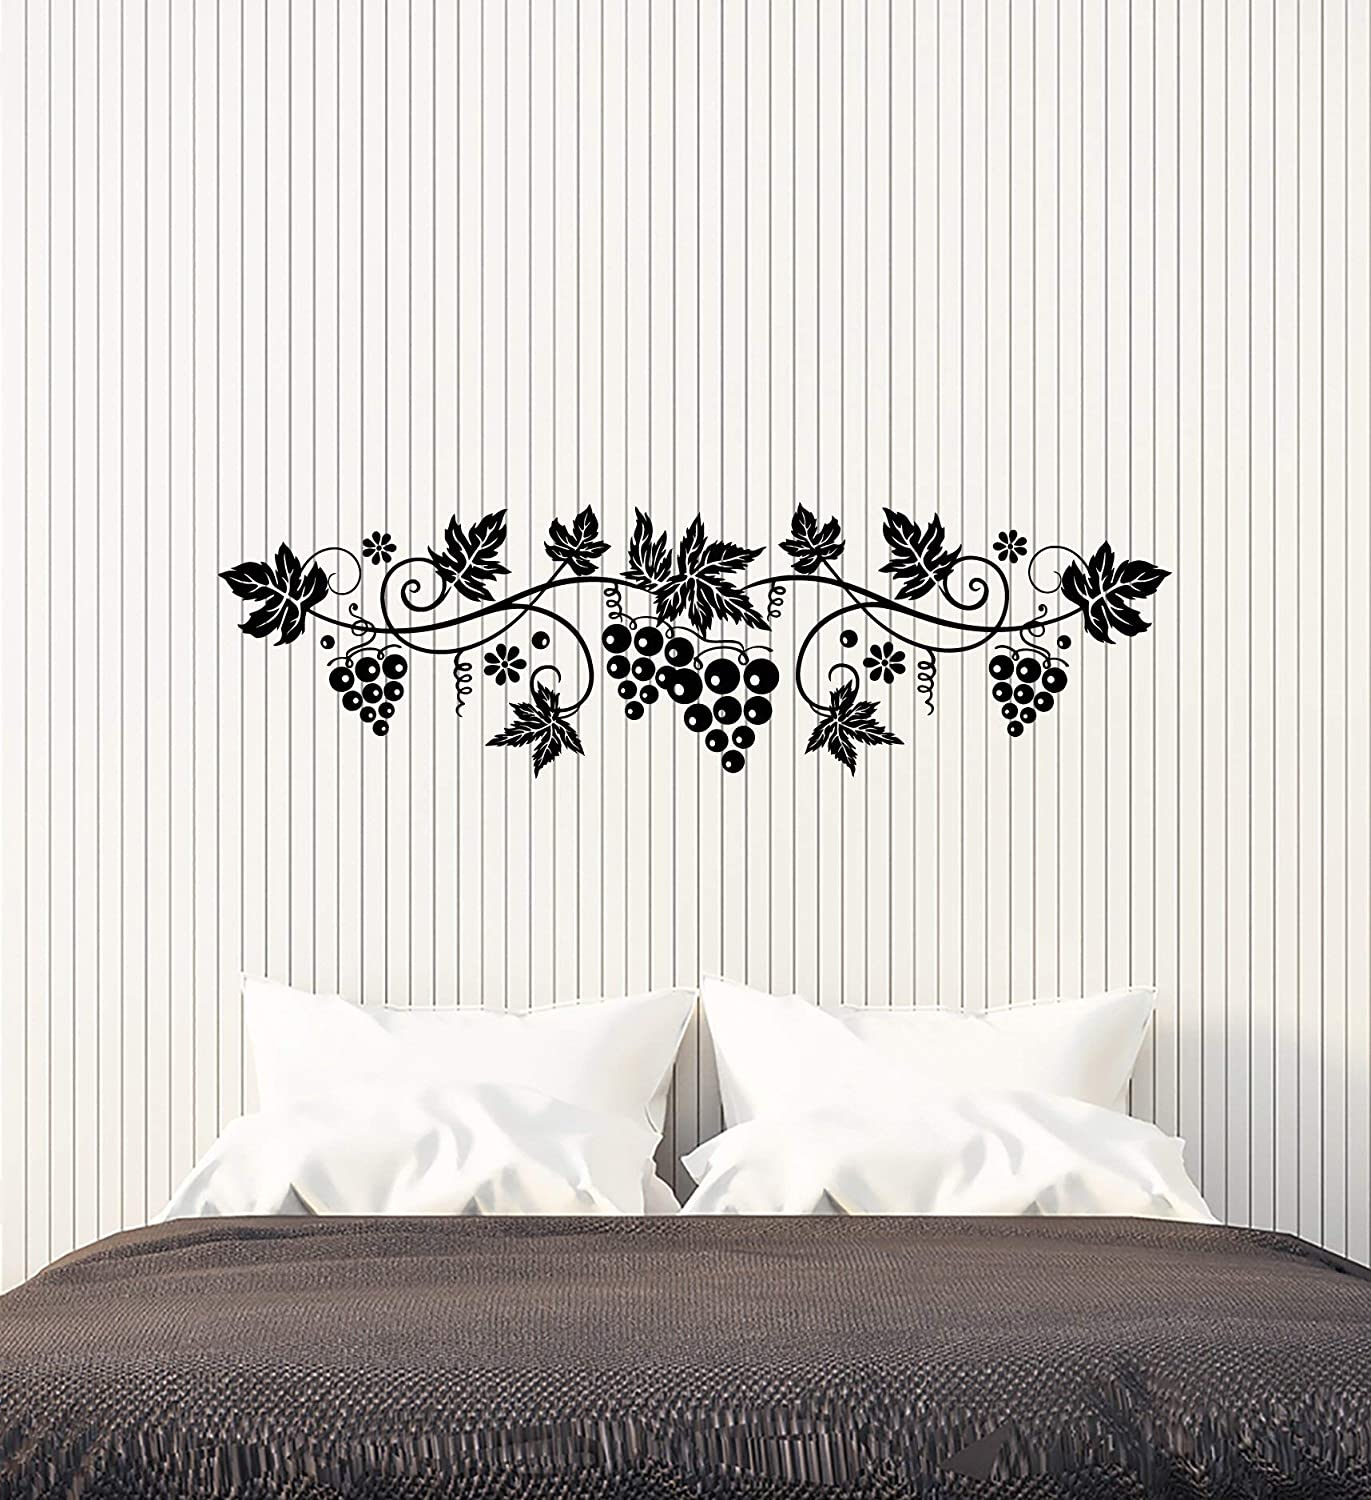 Vinyl Wall Decal Grapevine Kitchen Decor Grapes Wine Shop Stickers (3878ig)